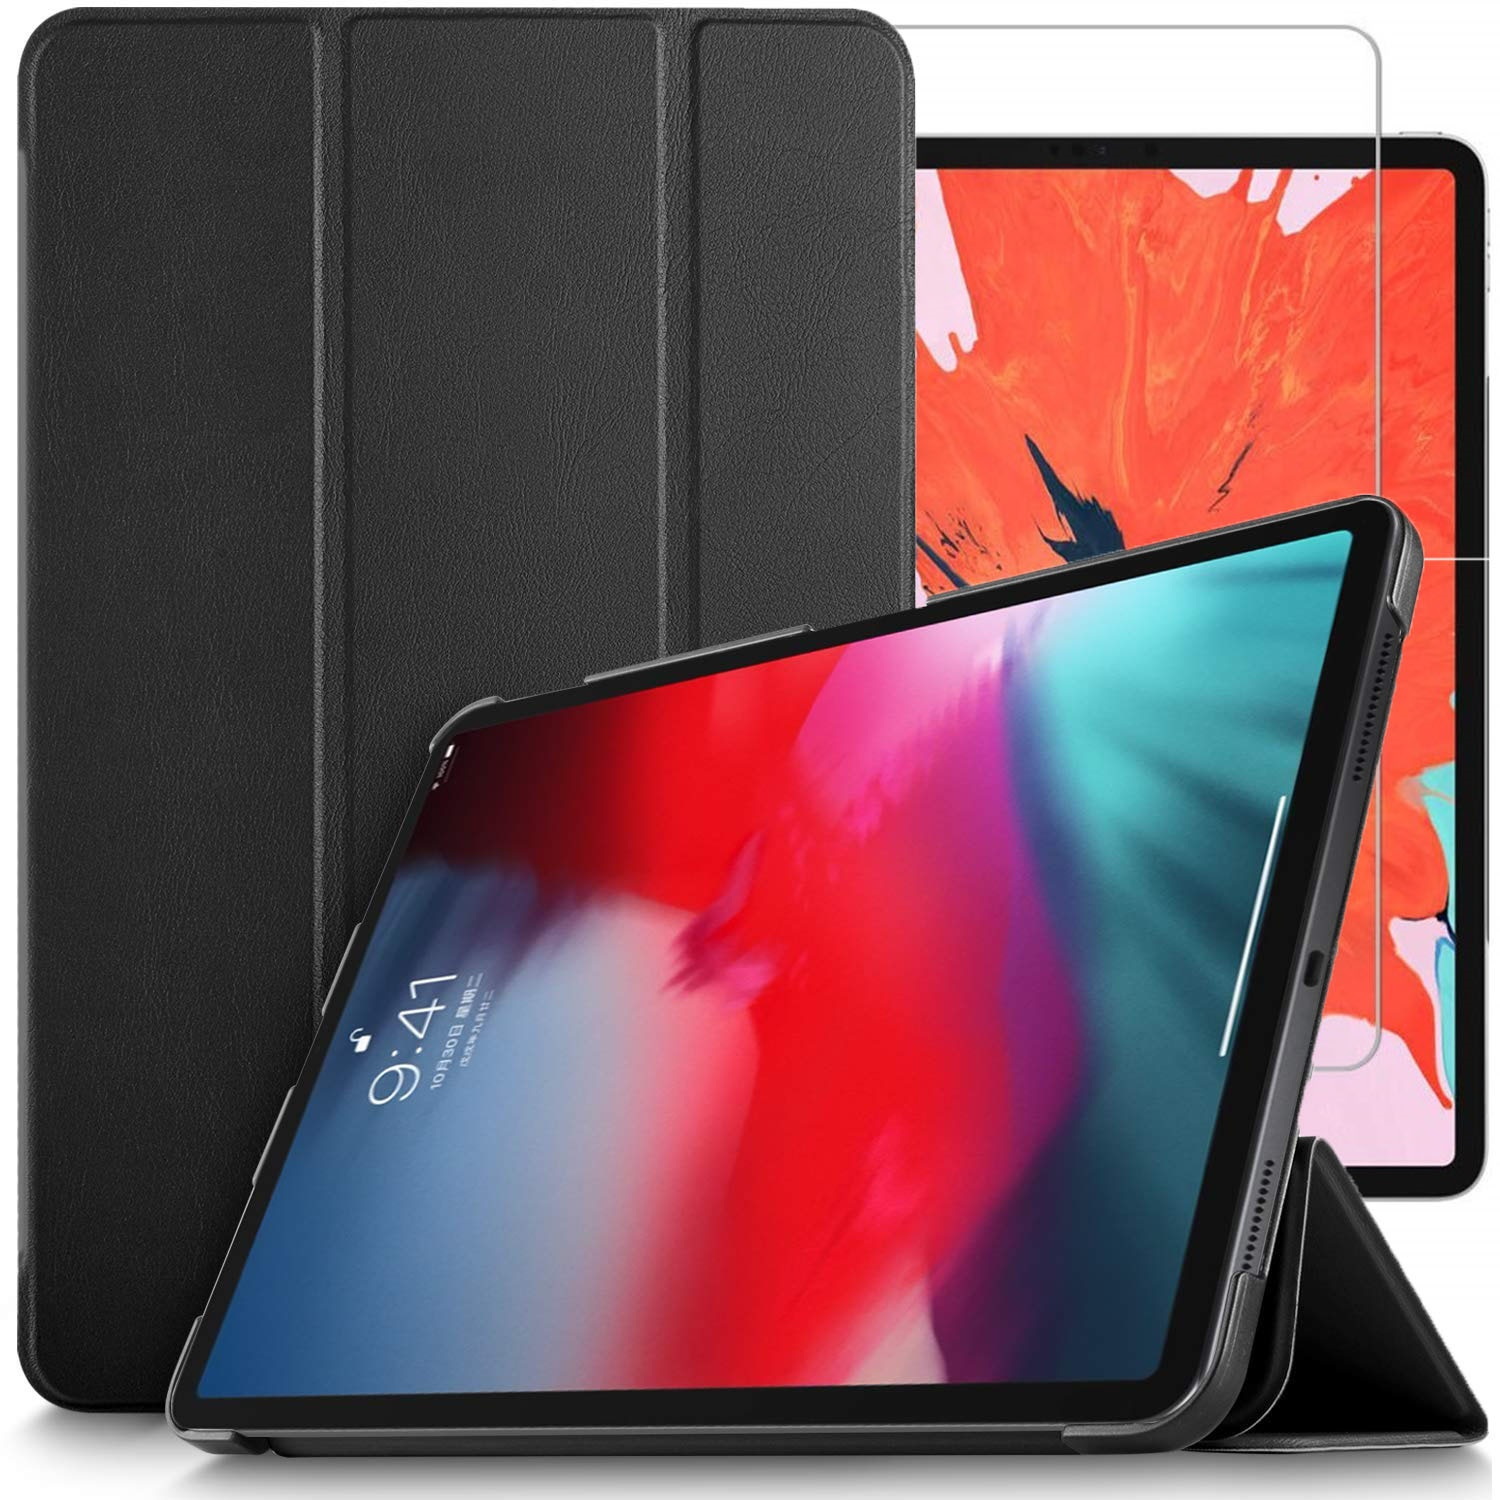 d0c10e3087 Details about For Apple iPad Pro 12.9 (2018) Case Stand Cover & Glass  Screen Protector